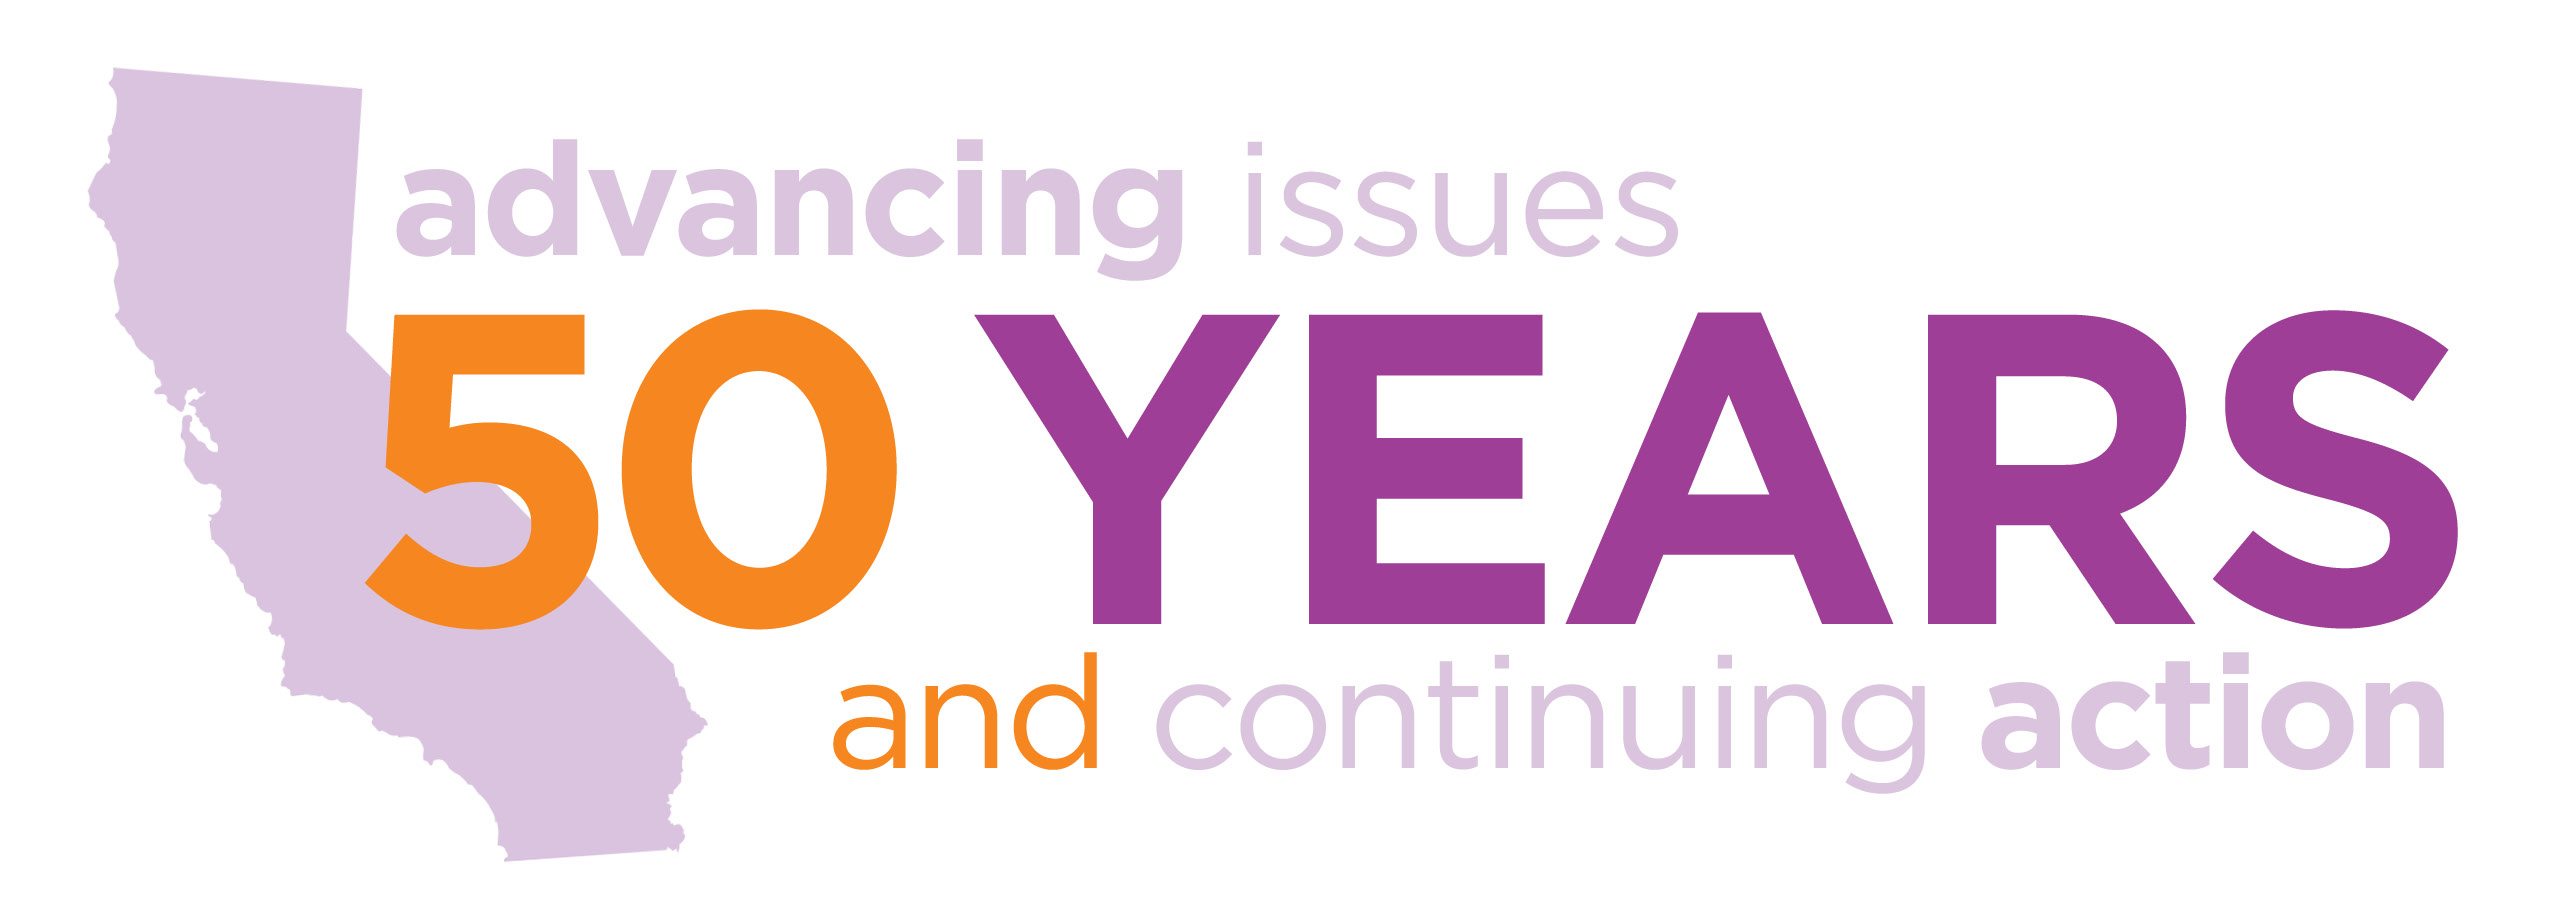 50 Years of advancing issues and continuing action